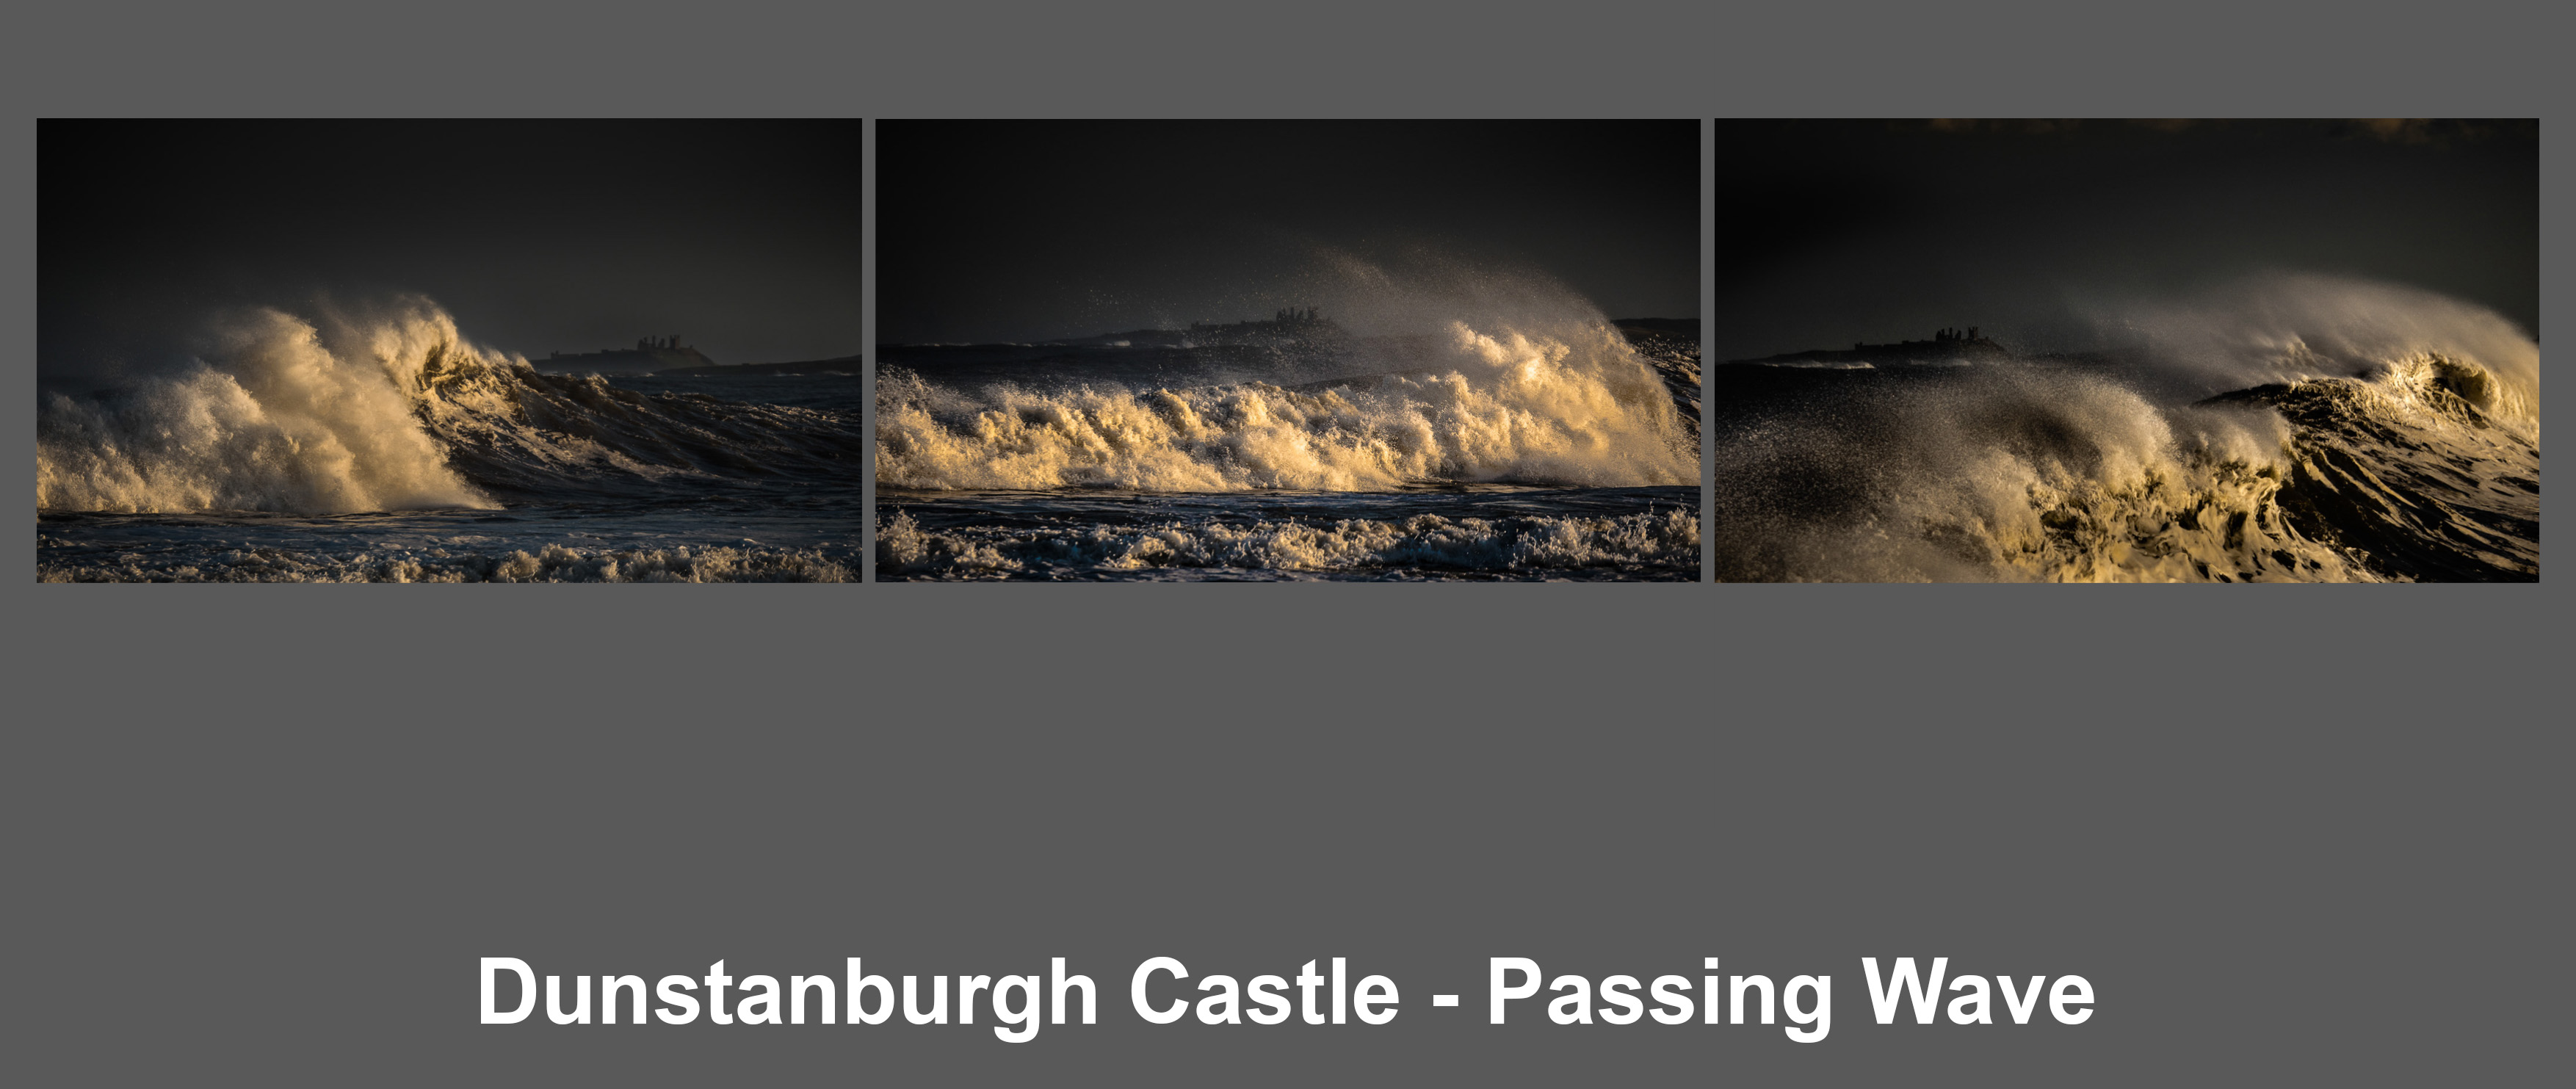 Dunstanburgh Castle - Passing Wave by Alastair Bisset